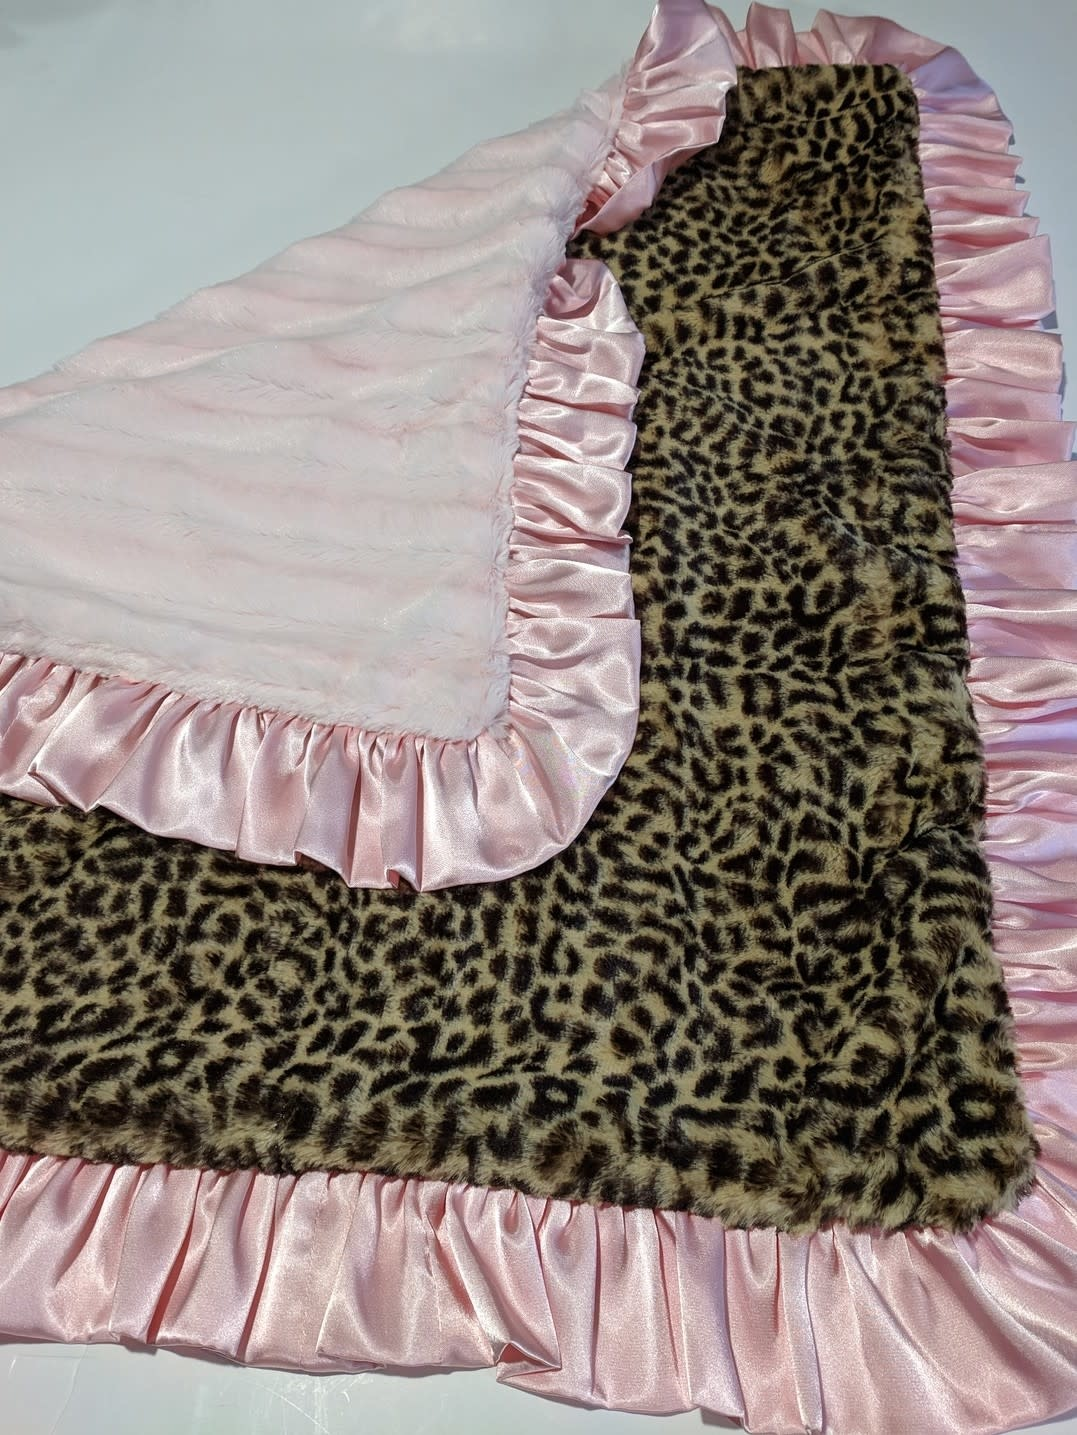 Cuddle couture Luxe Minky Blankets, 36""